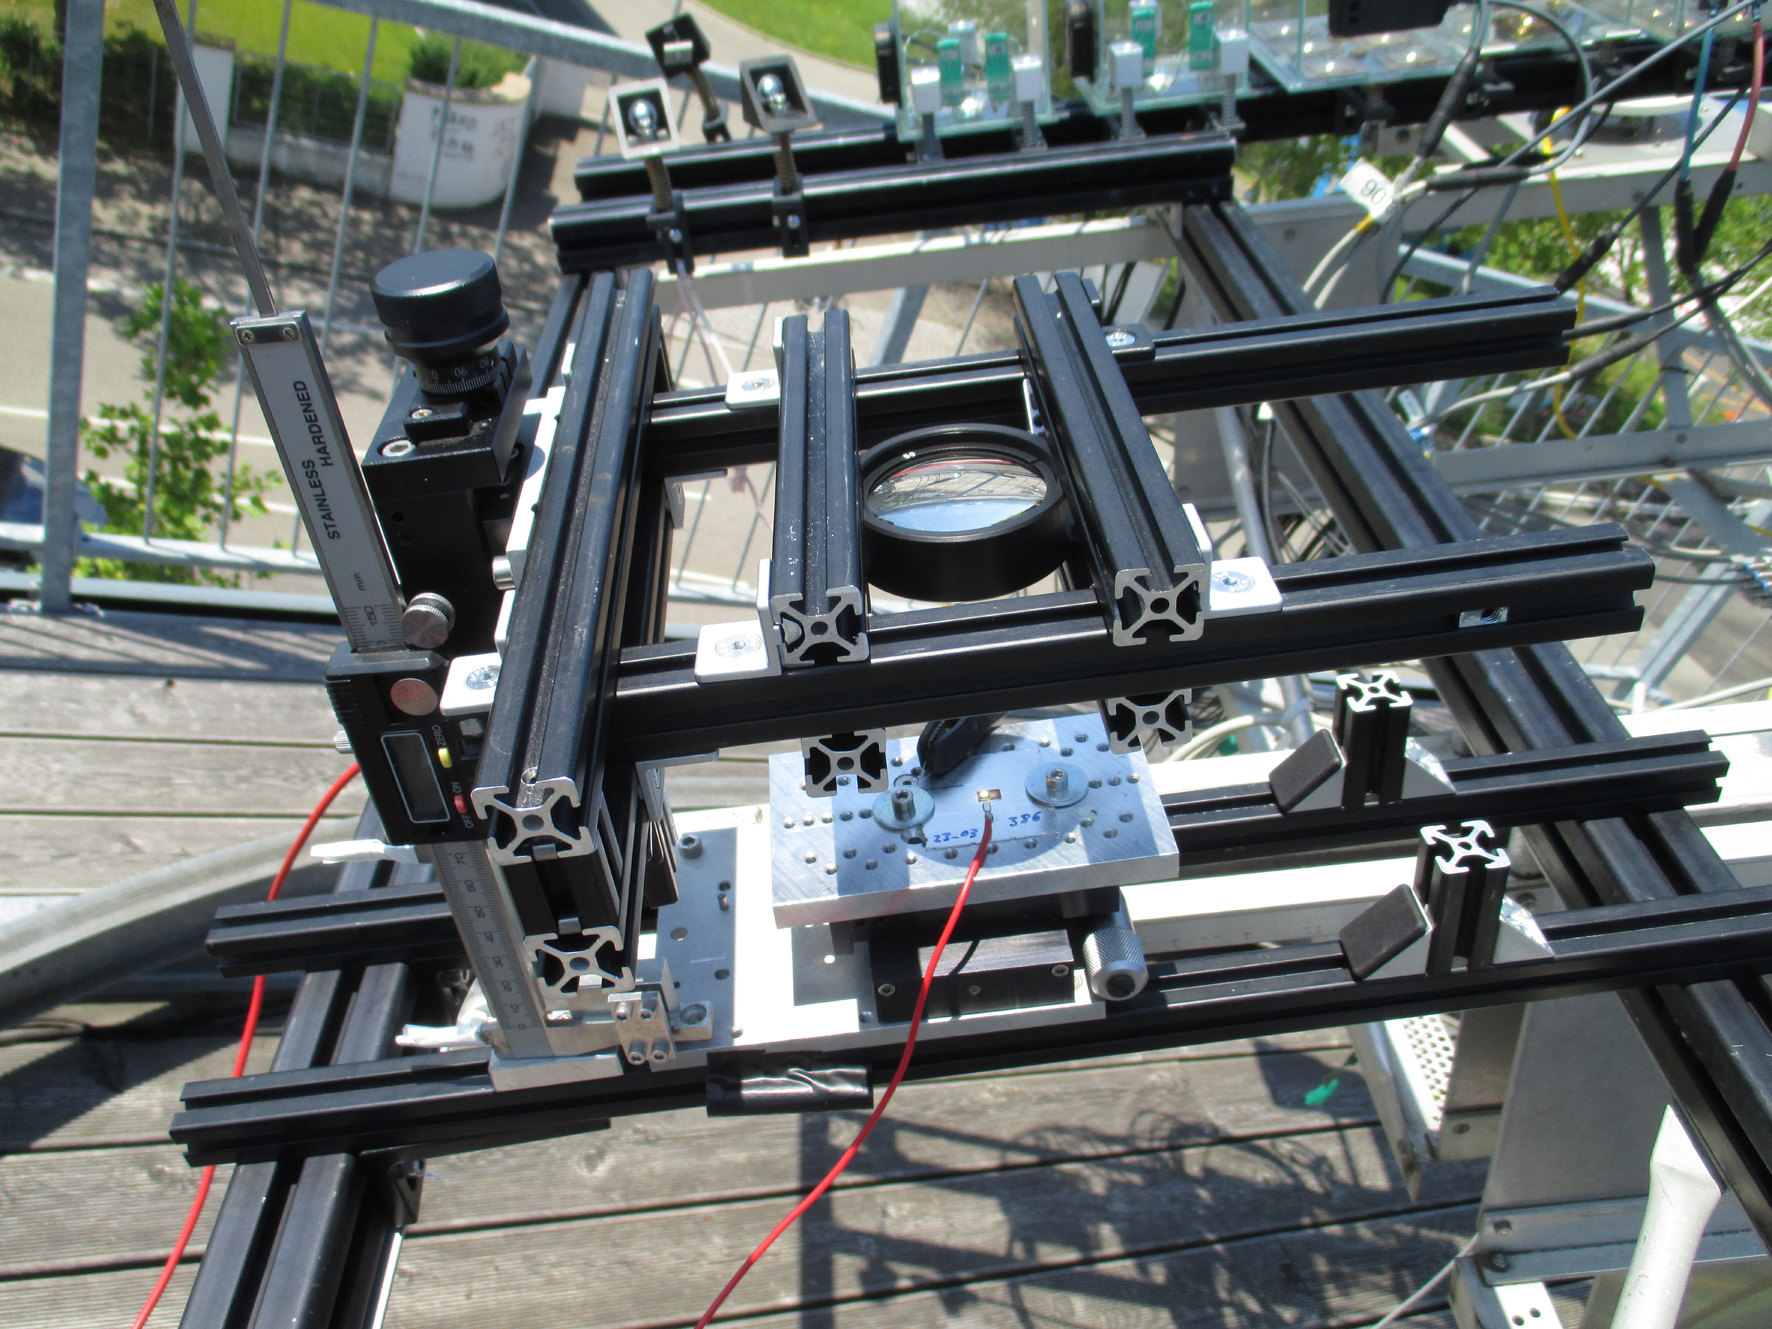 The new CPV mini-module reached a world record of 43.3% efficiency at the module level. Image: Fraunhofer ISE.